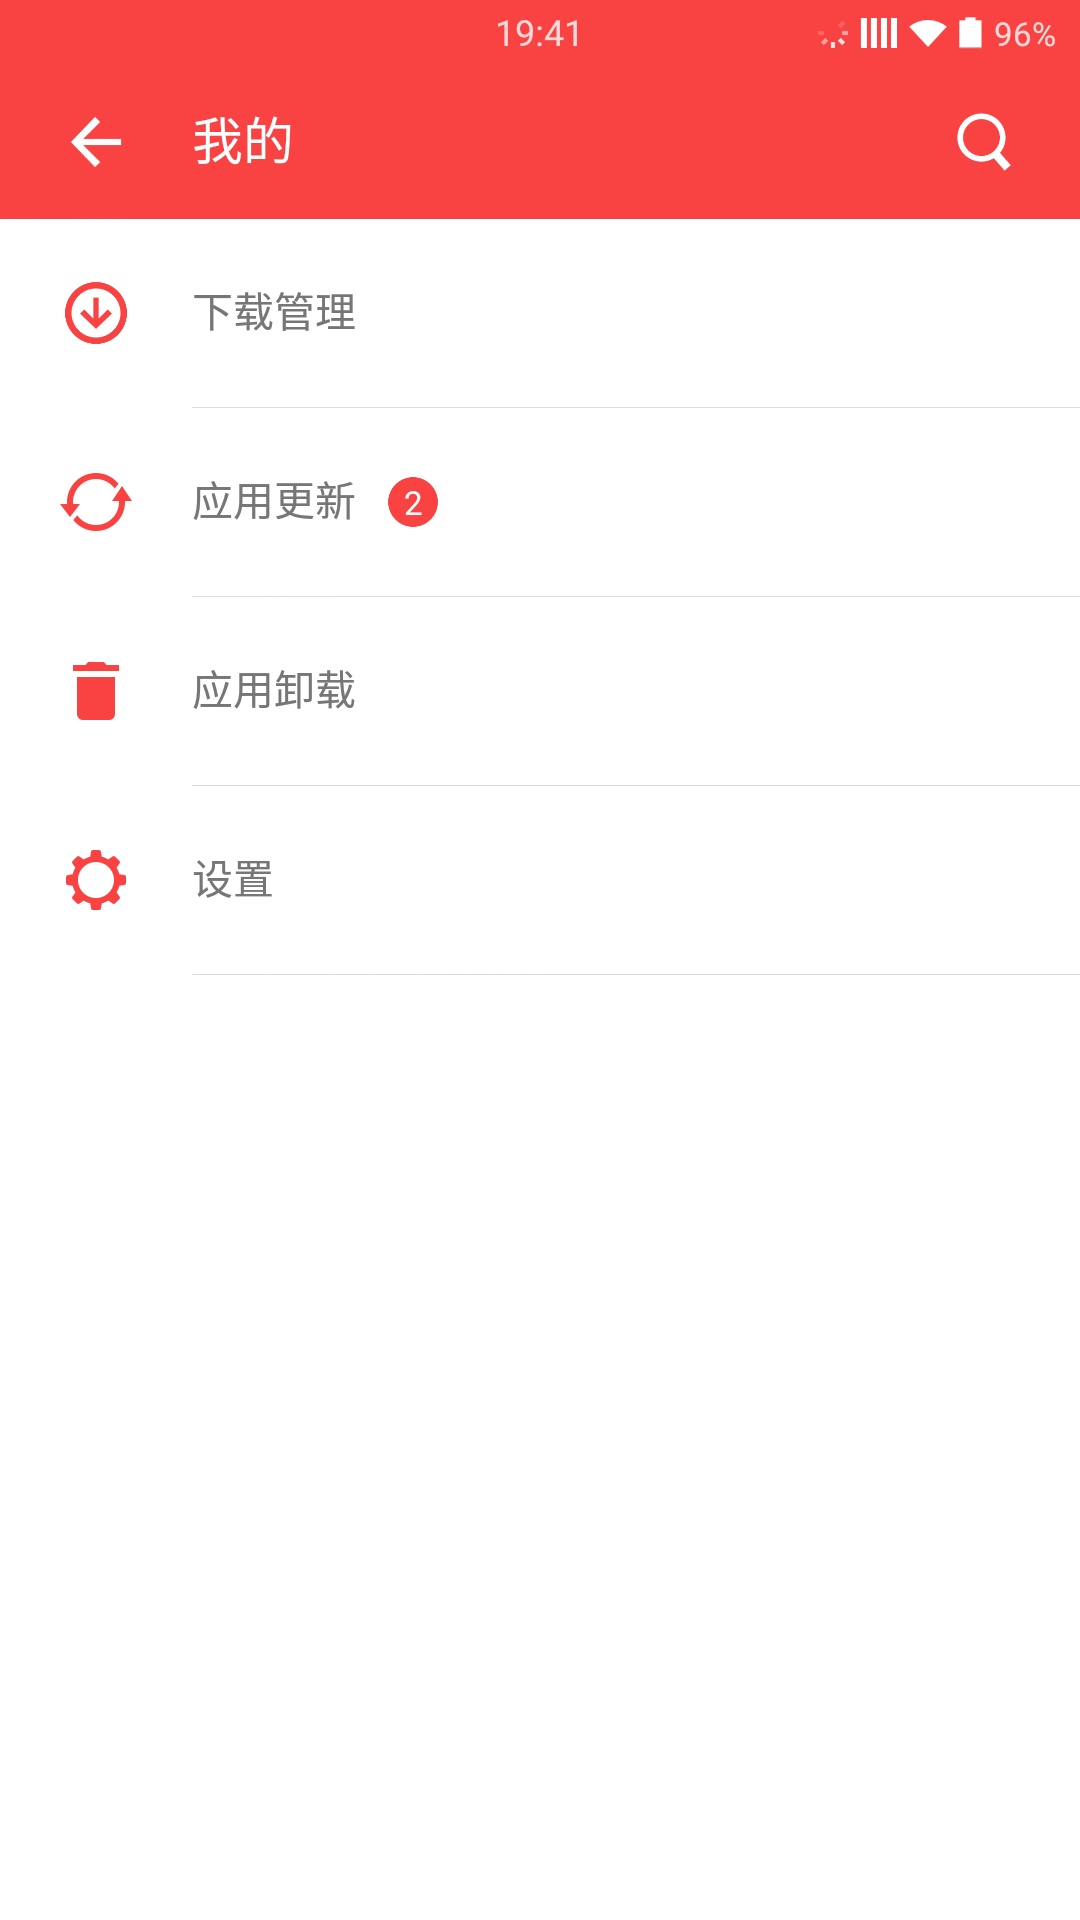 Screenshot_2015-06-05-19-41-04.png